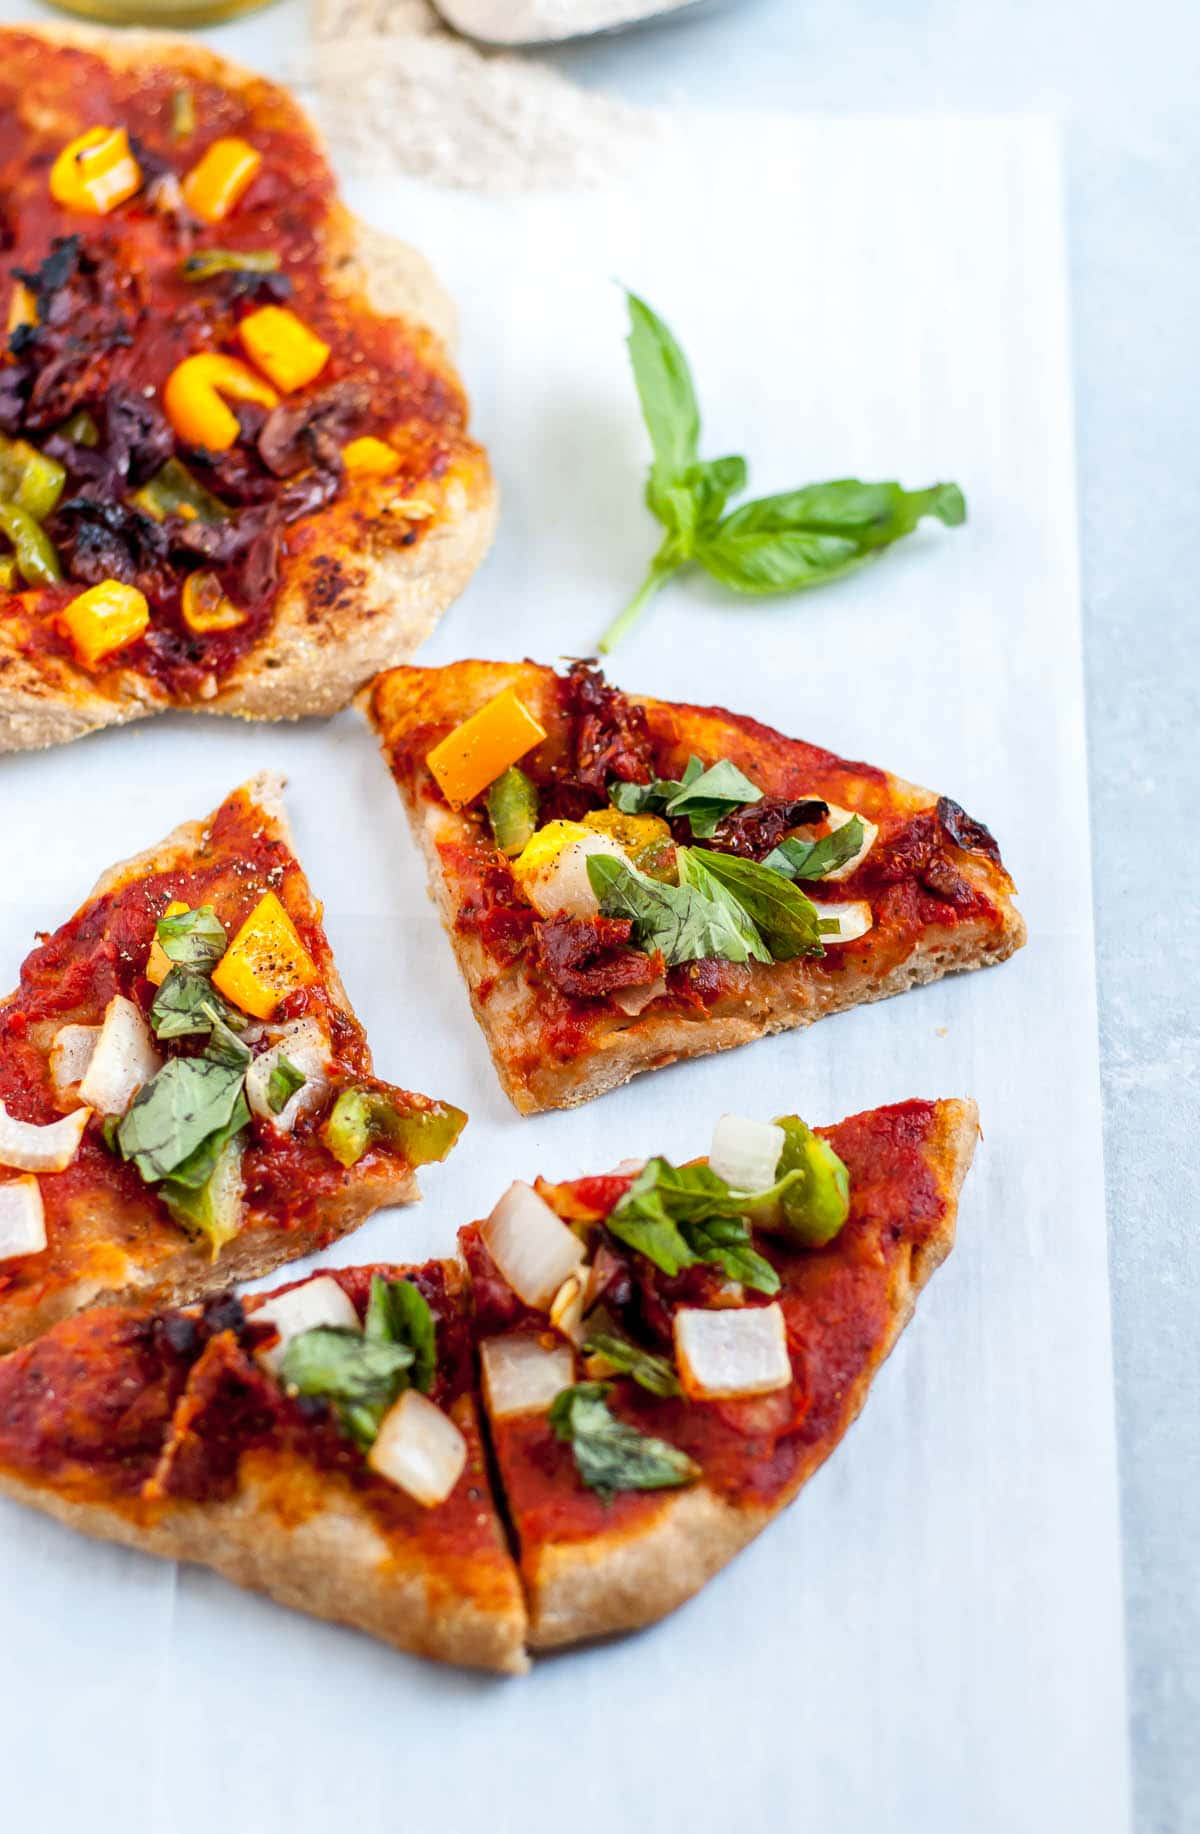 slices of vegan pizza on a blue background